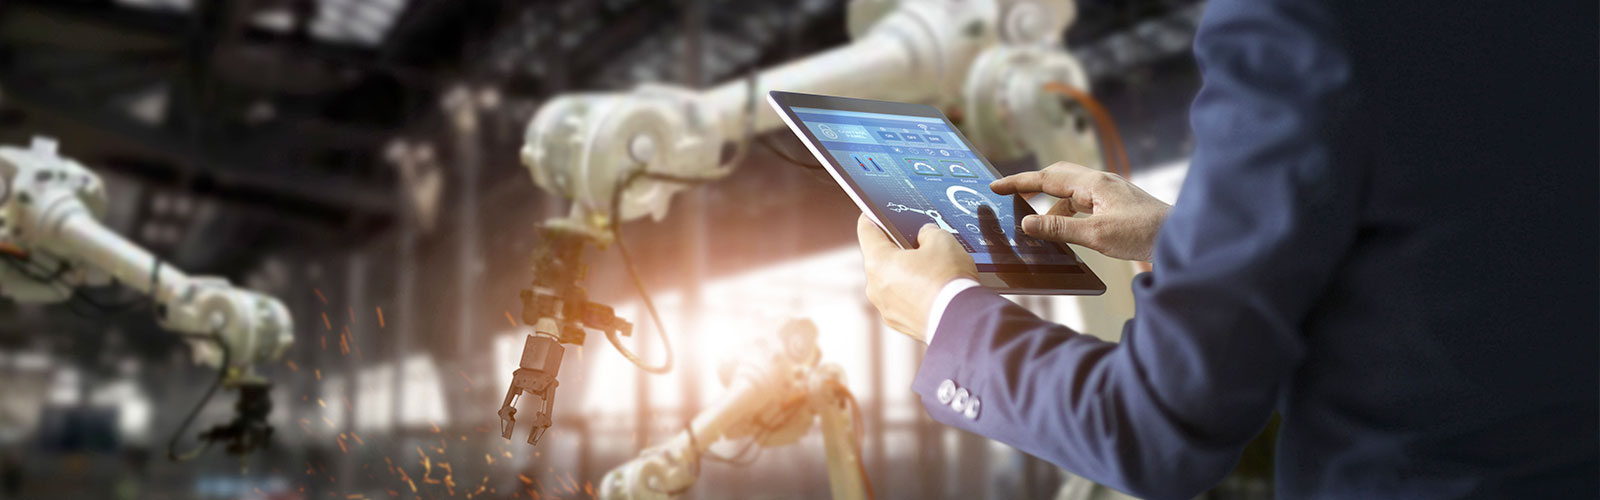 Robotic Solutions for Infrastructure Predictive Maintenance